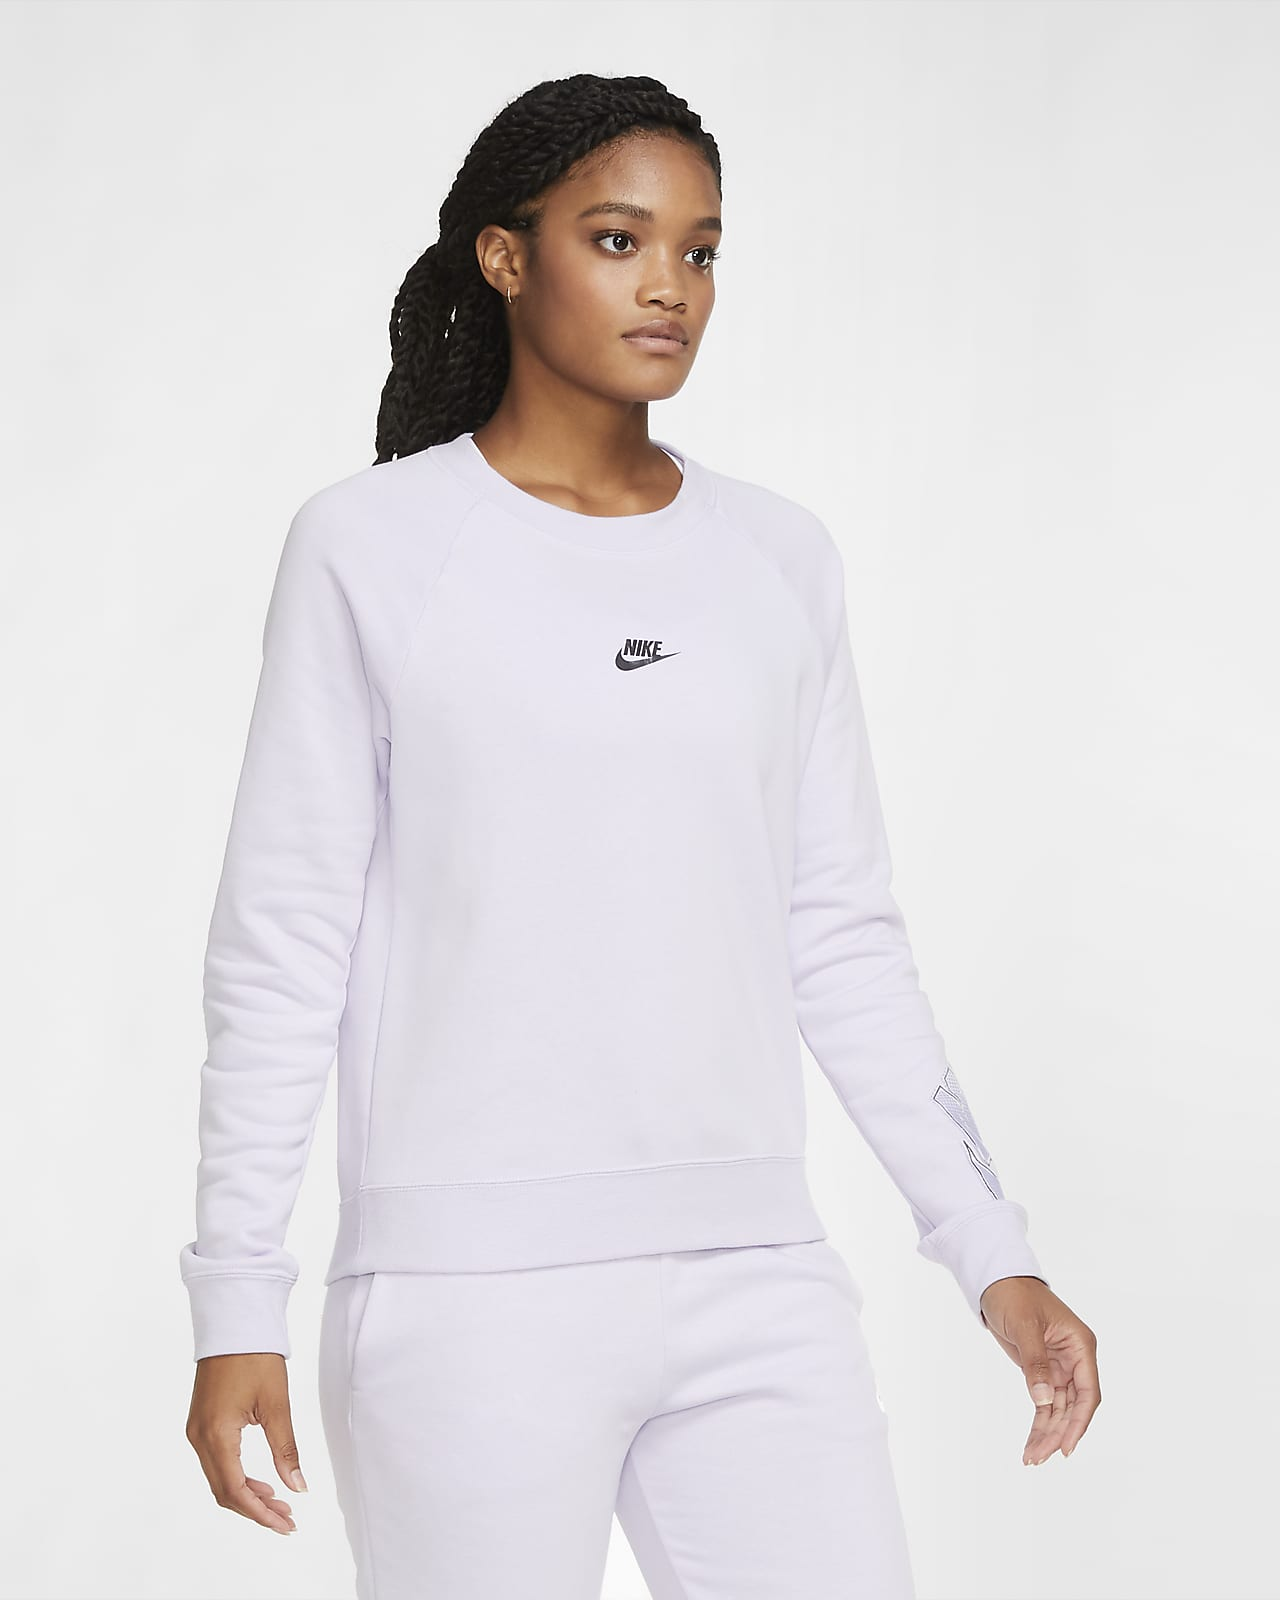 Nike Sportswear Women's Fleece Crew